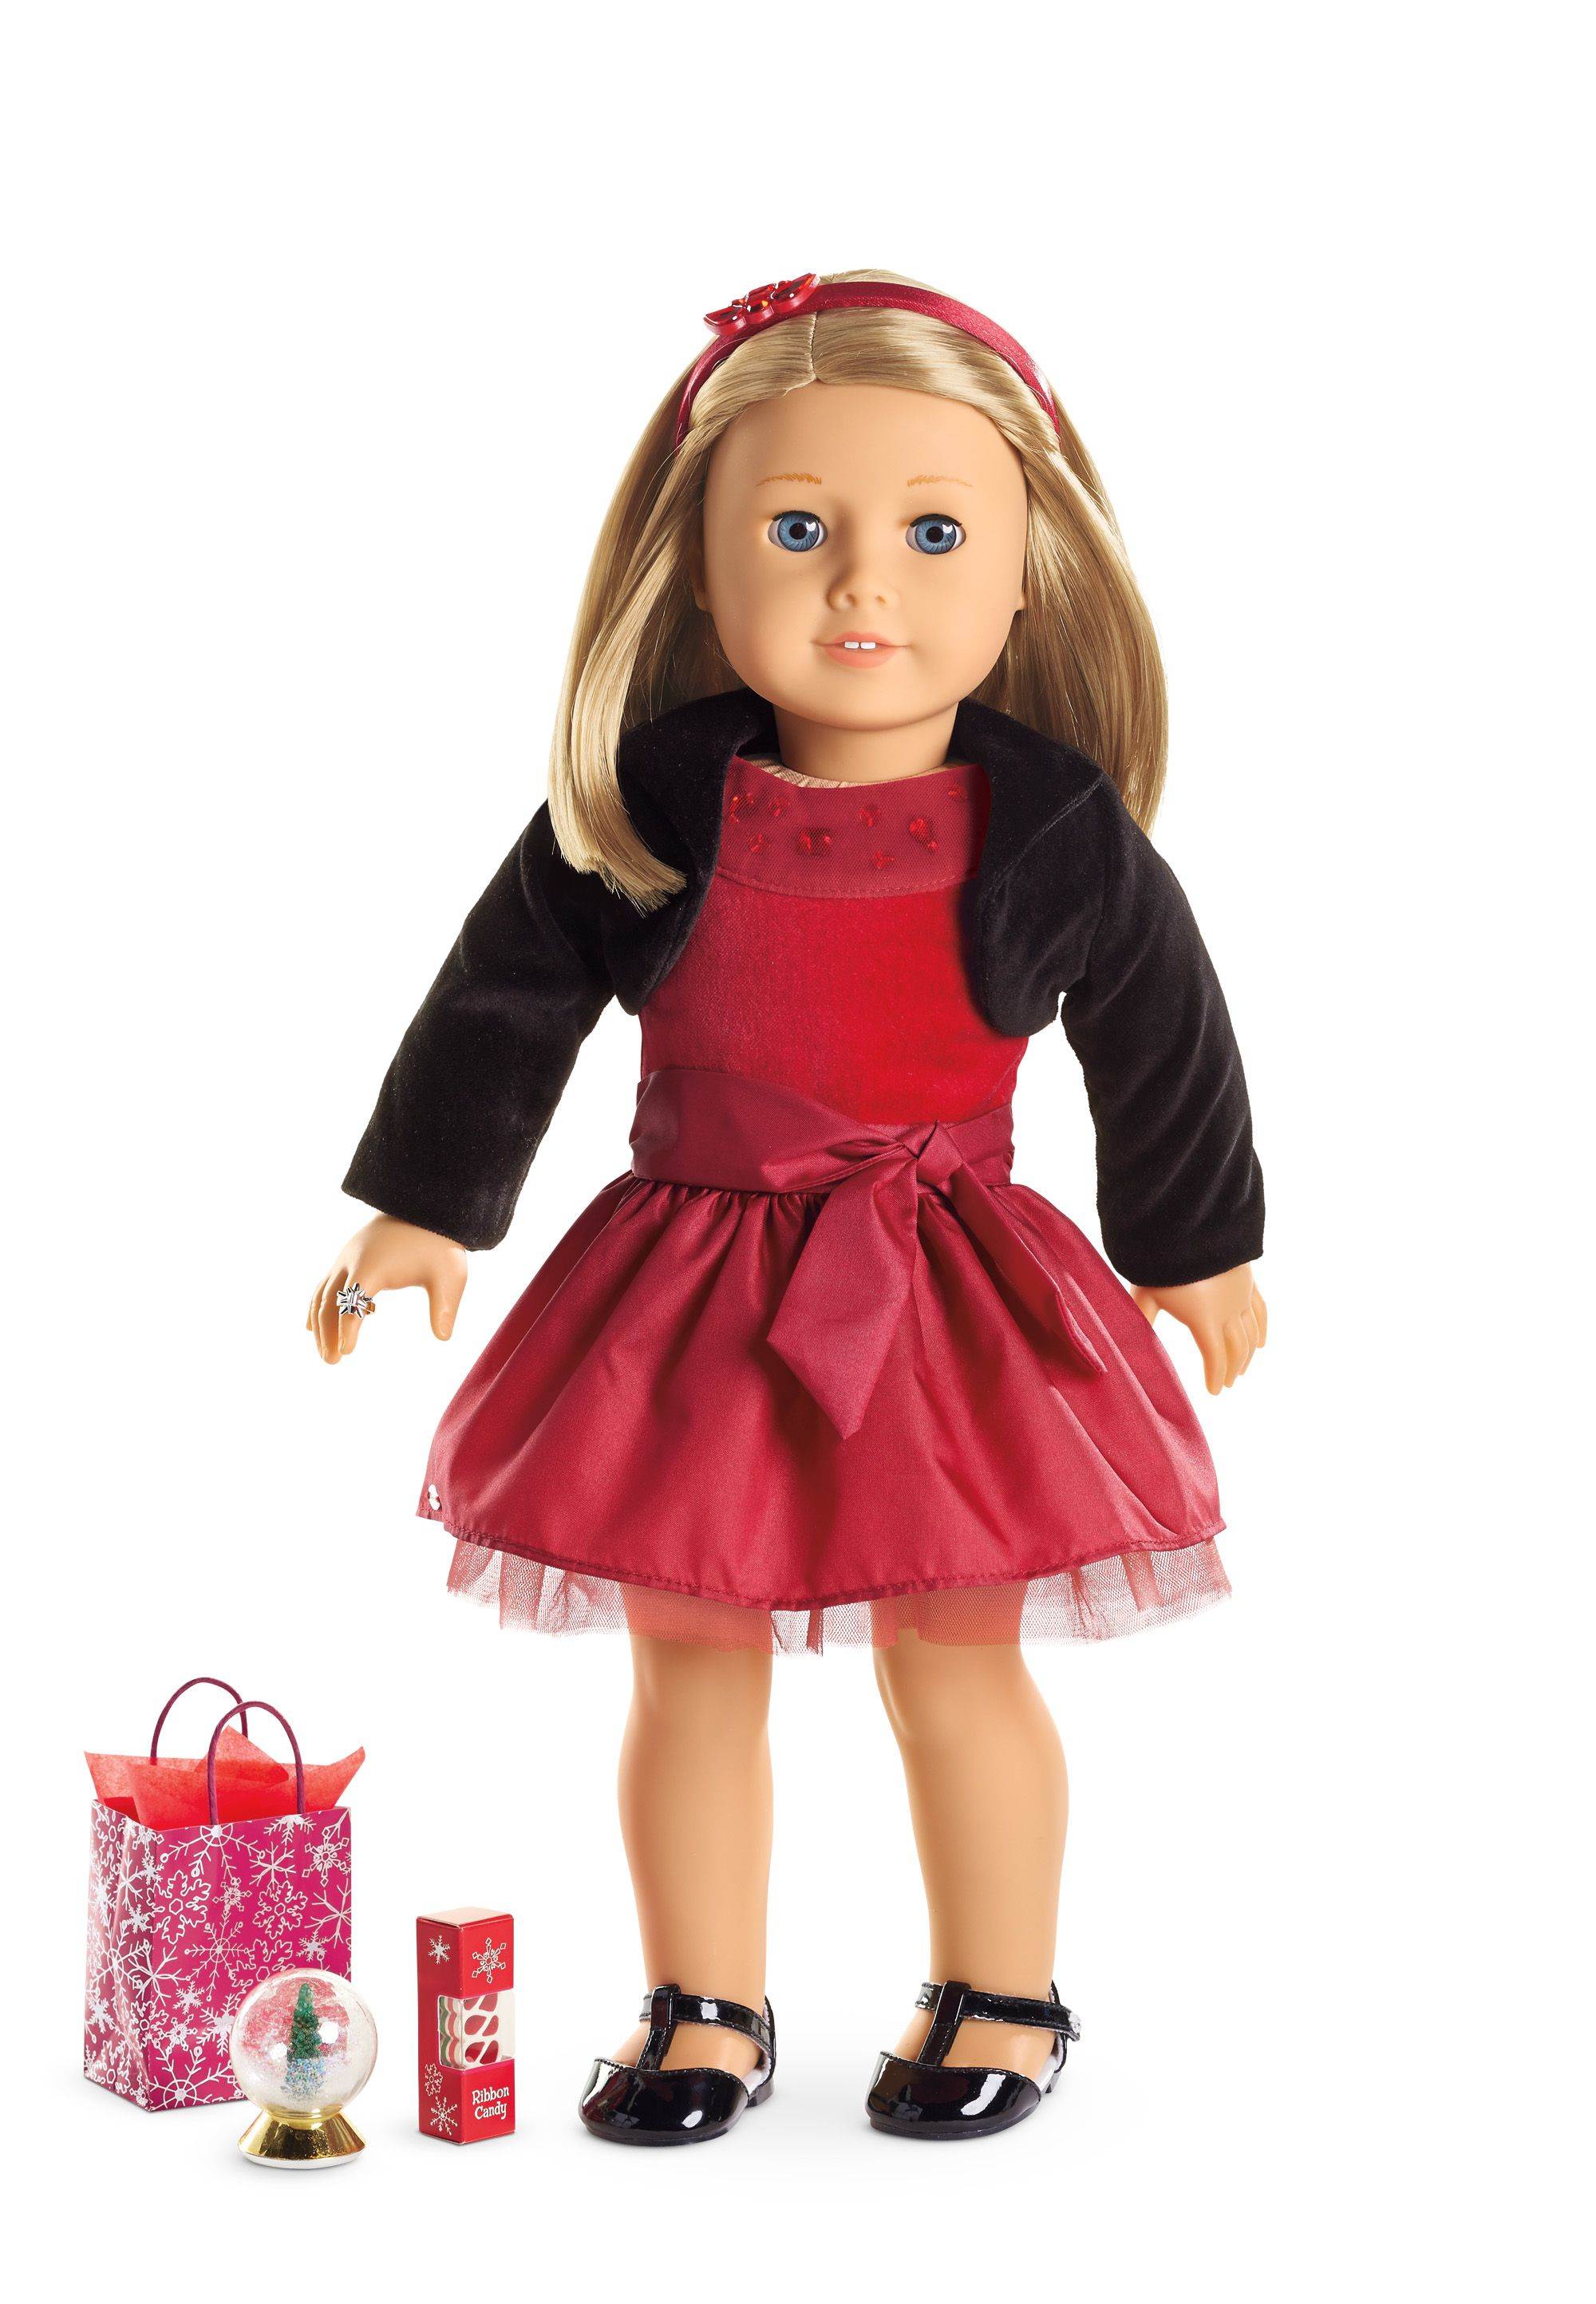 Joyful Jewels Outfit & Accessories for Dolls American